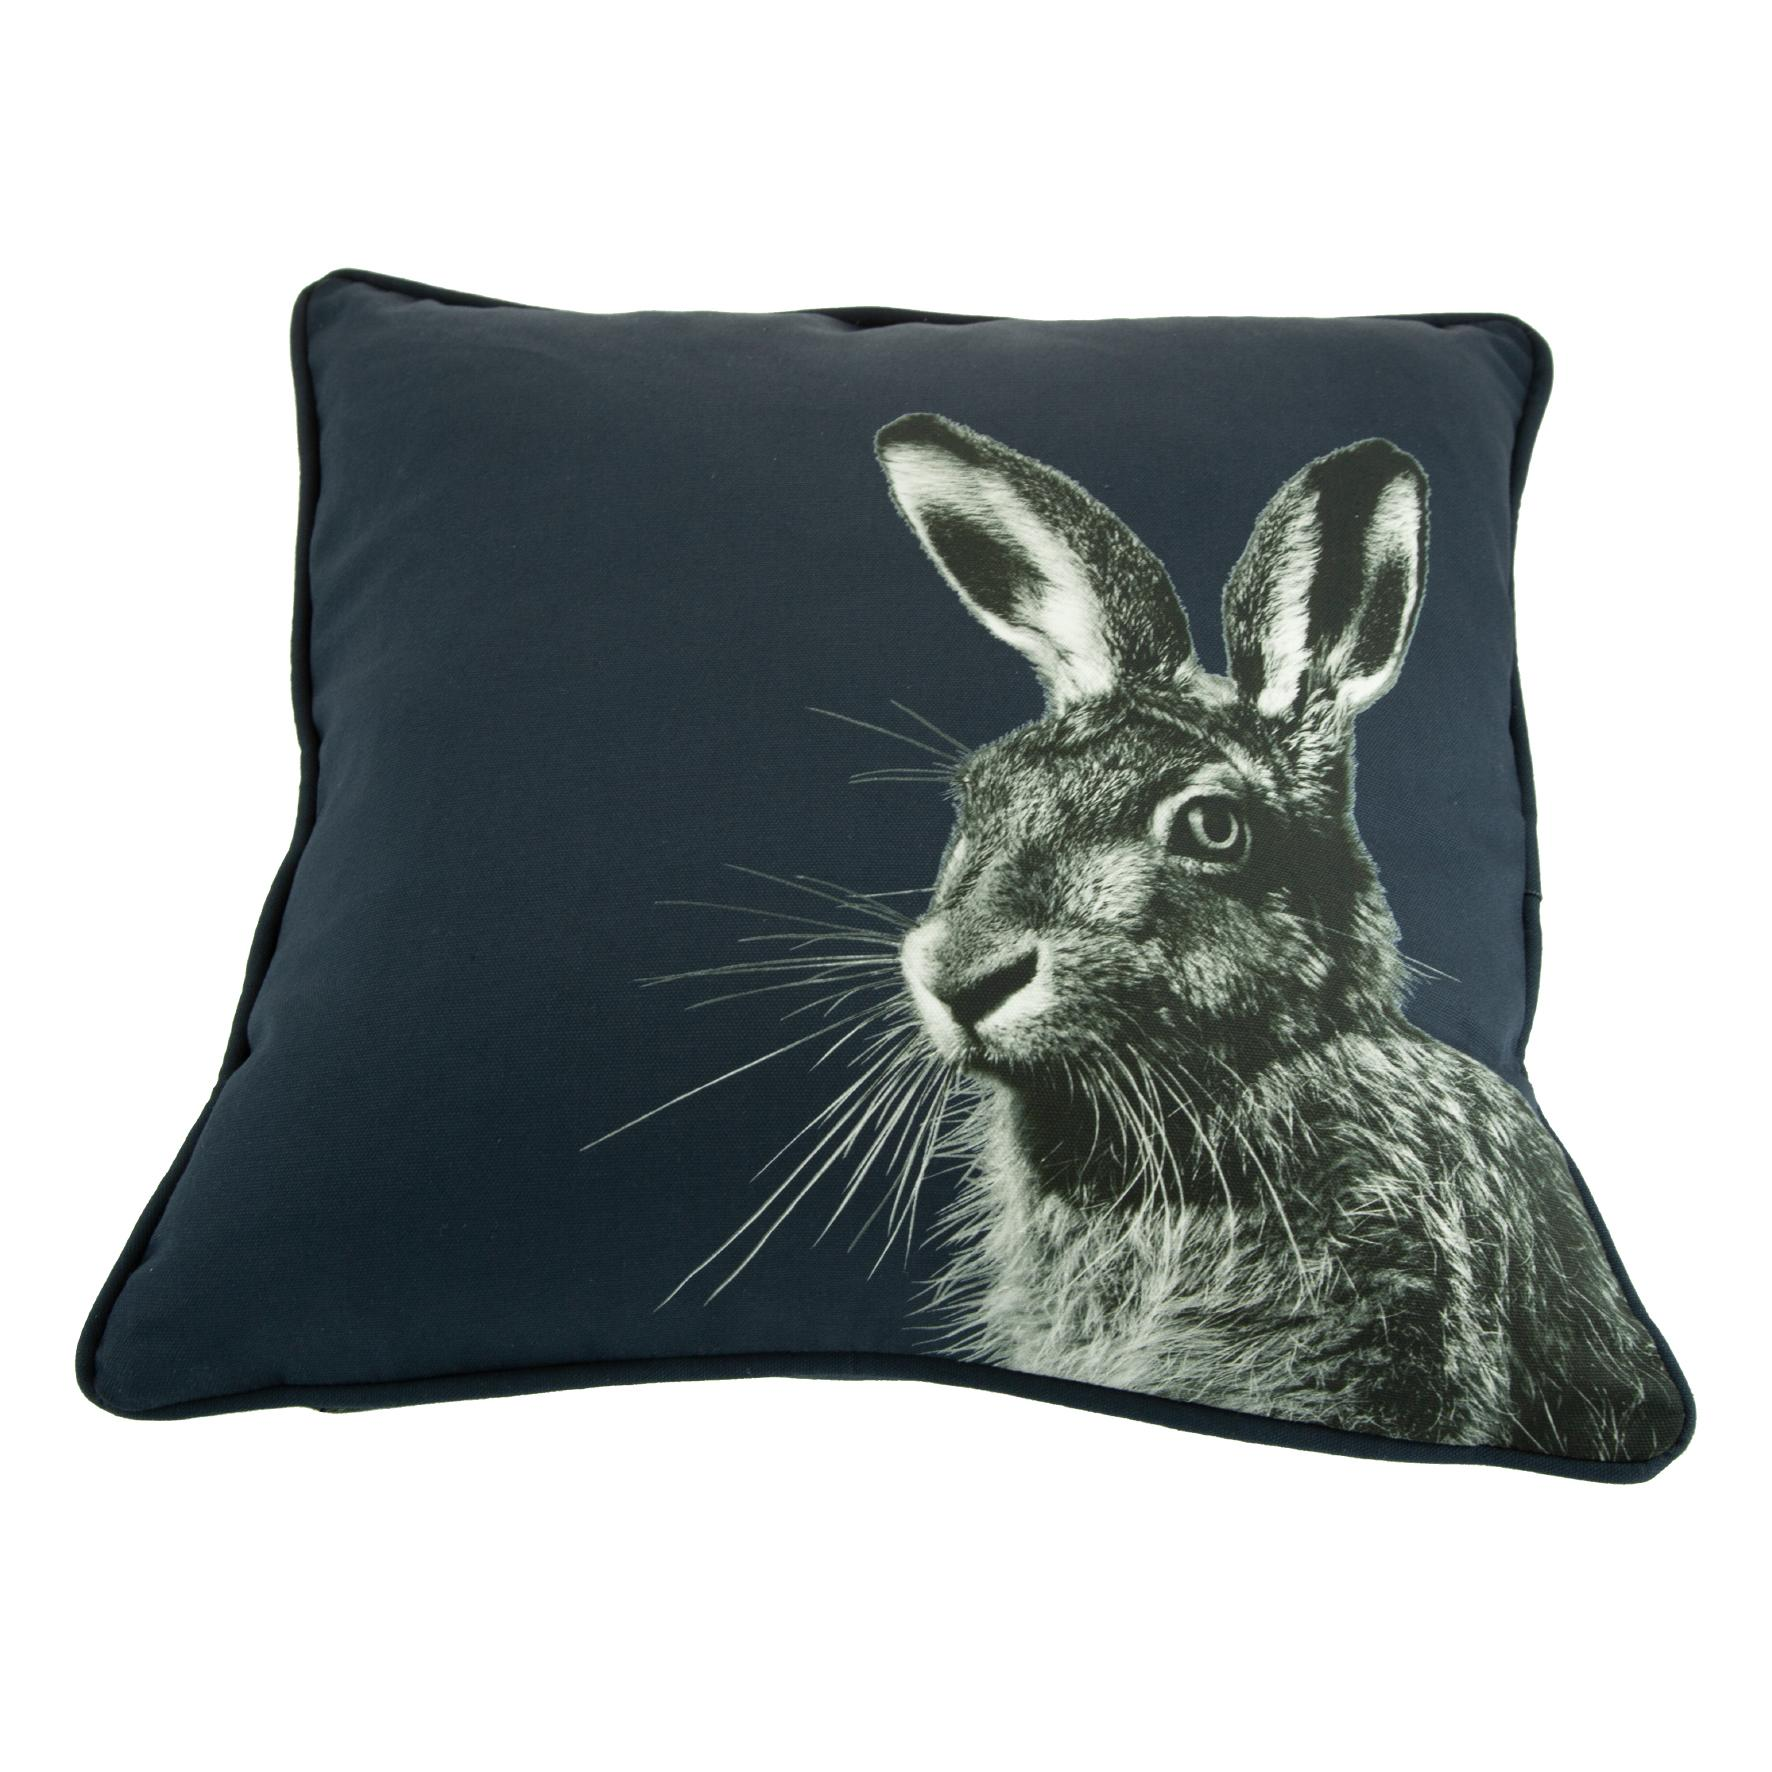 Hare Cushion on Blackberry